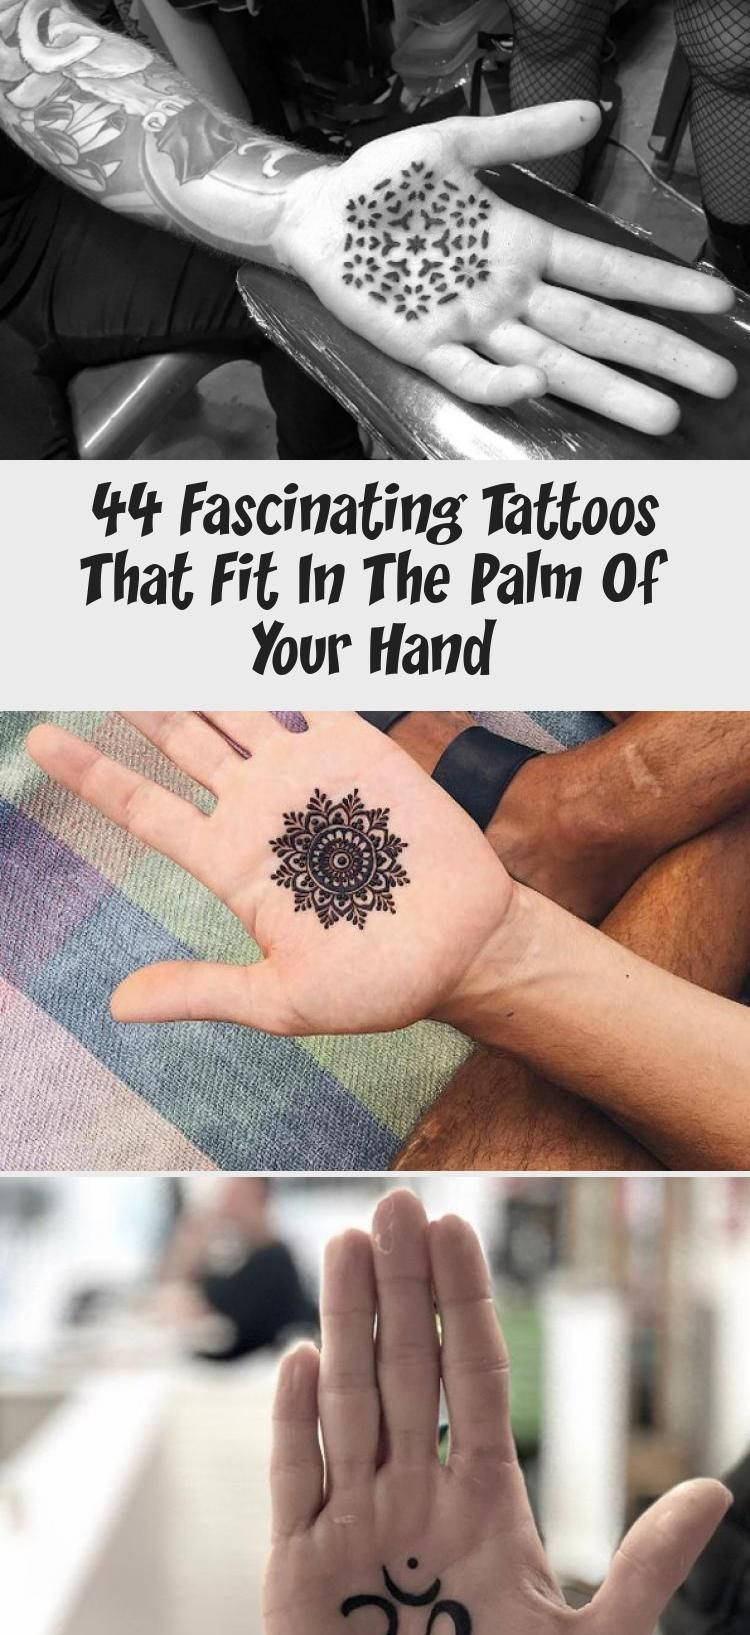 44 Fascinating Tattoos That Fit In The Palm Of Your Hand Tattoo In 2020 Tattoos Cool Tattoos For Guys Palm Tattoos